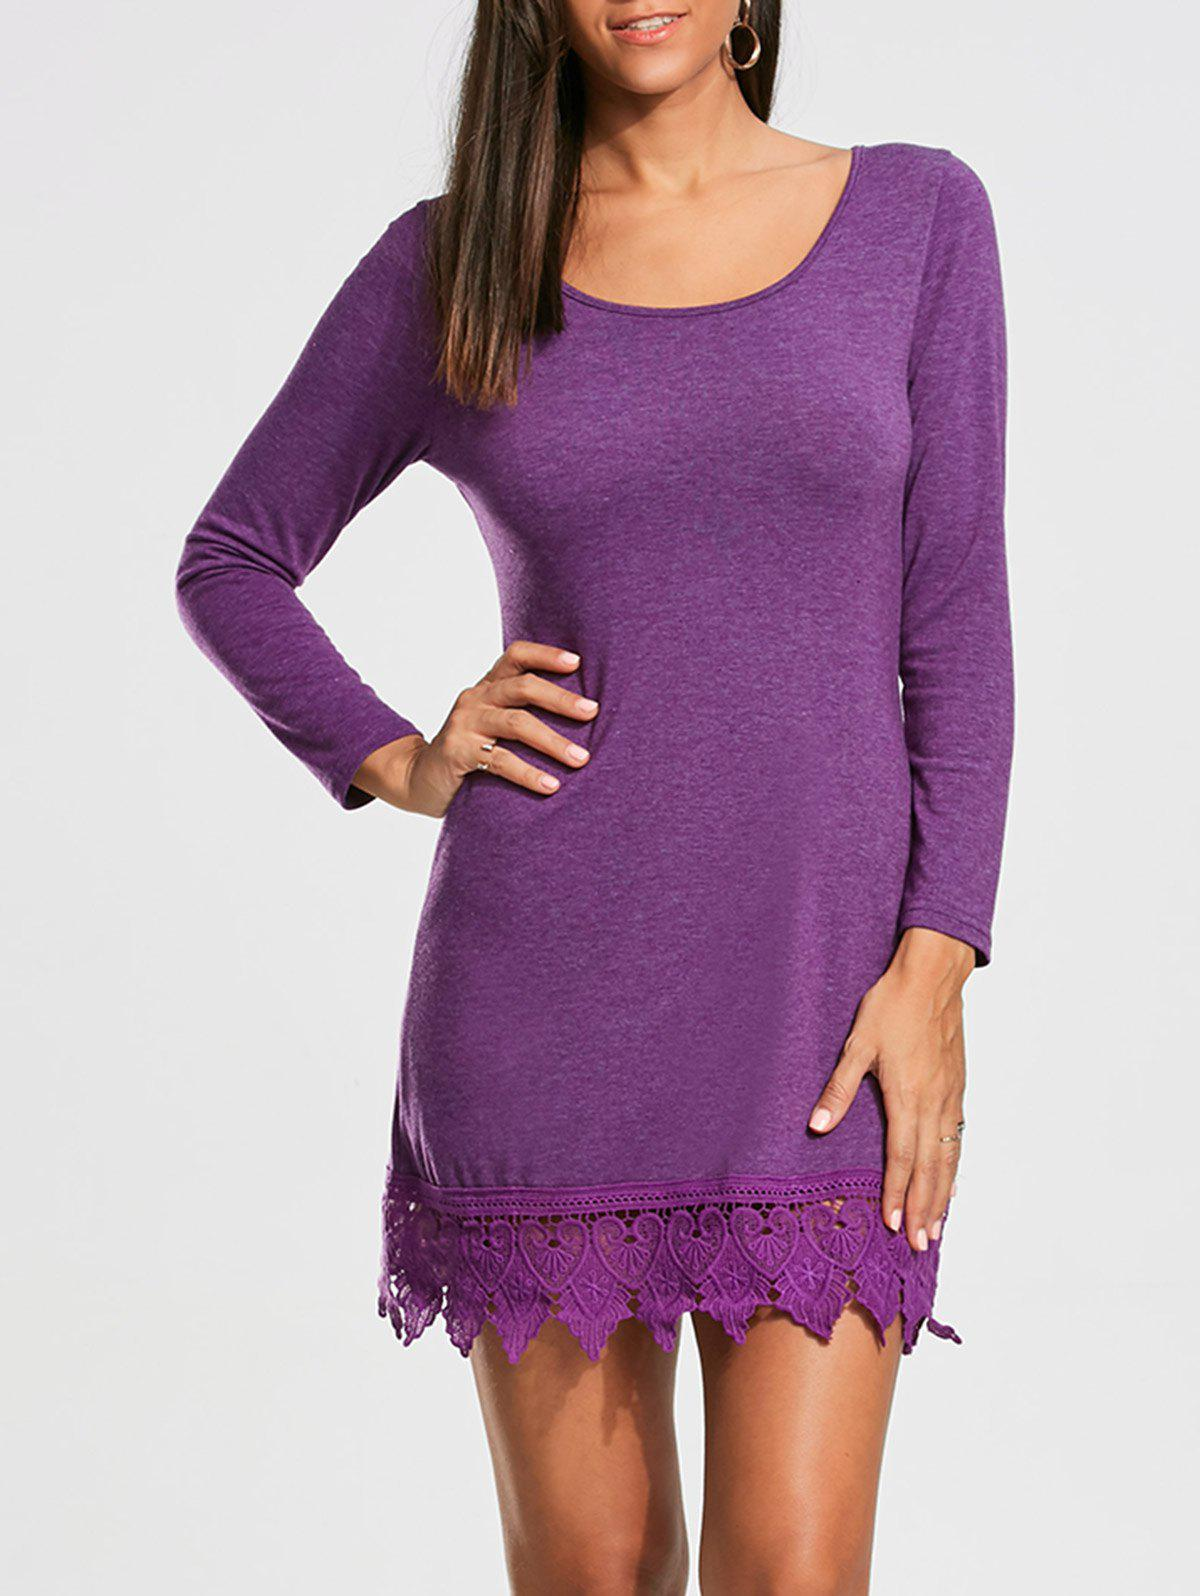 Lace Trim Long Sleeve T-shirt Mini Dress - PURPLE 2XL